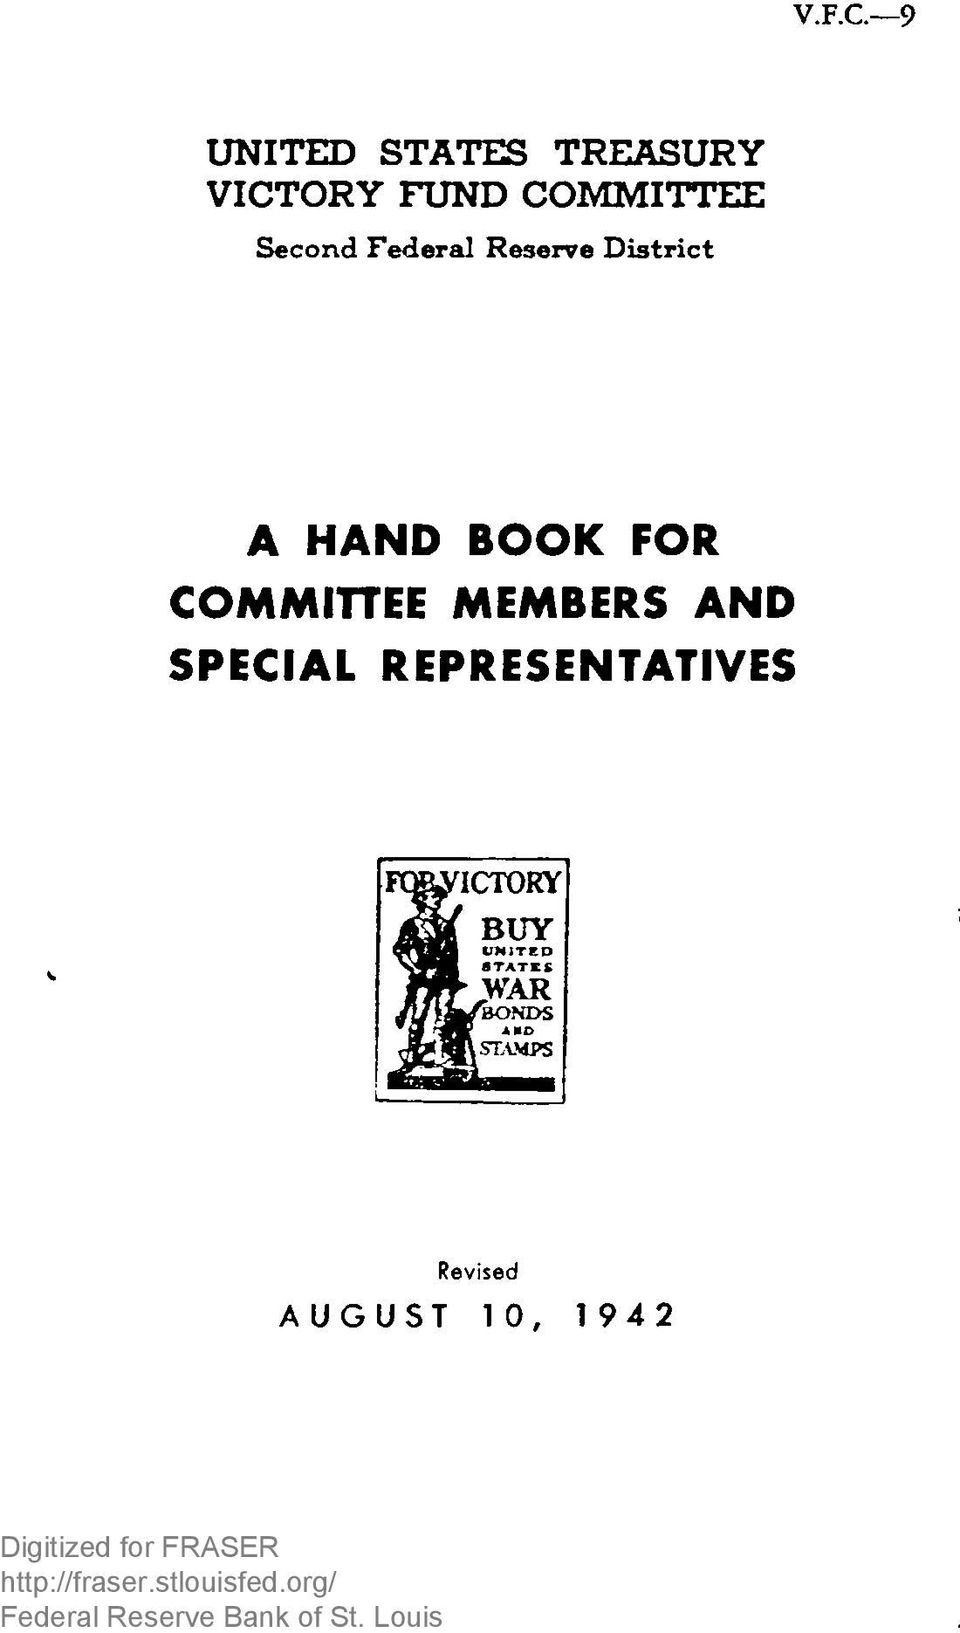 istrict A HAND BOOK FOR COMMITTEE MEMBERS